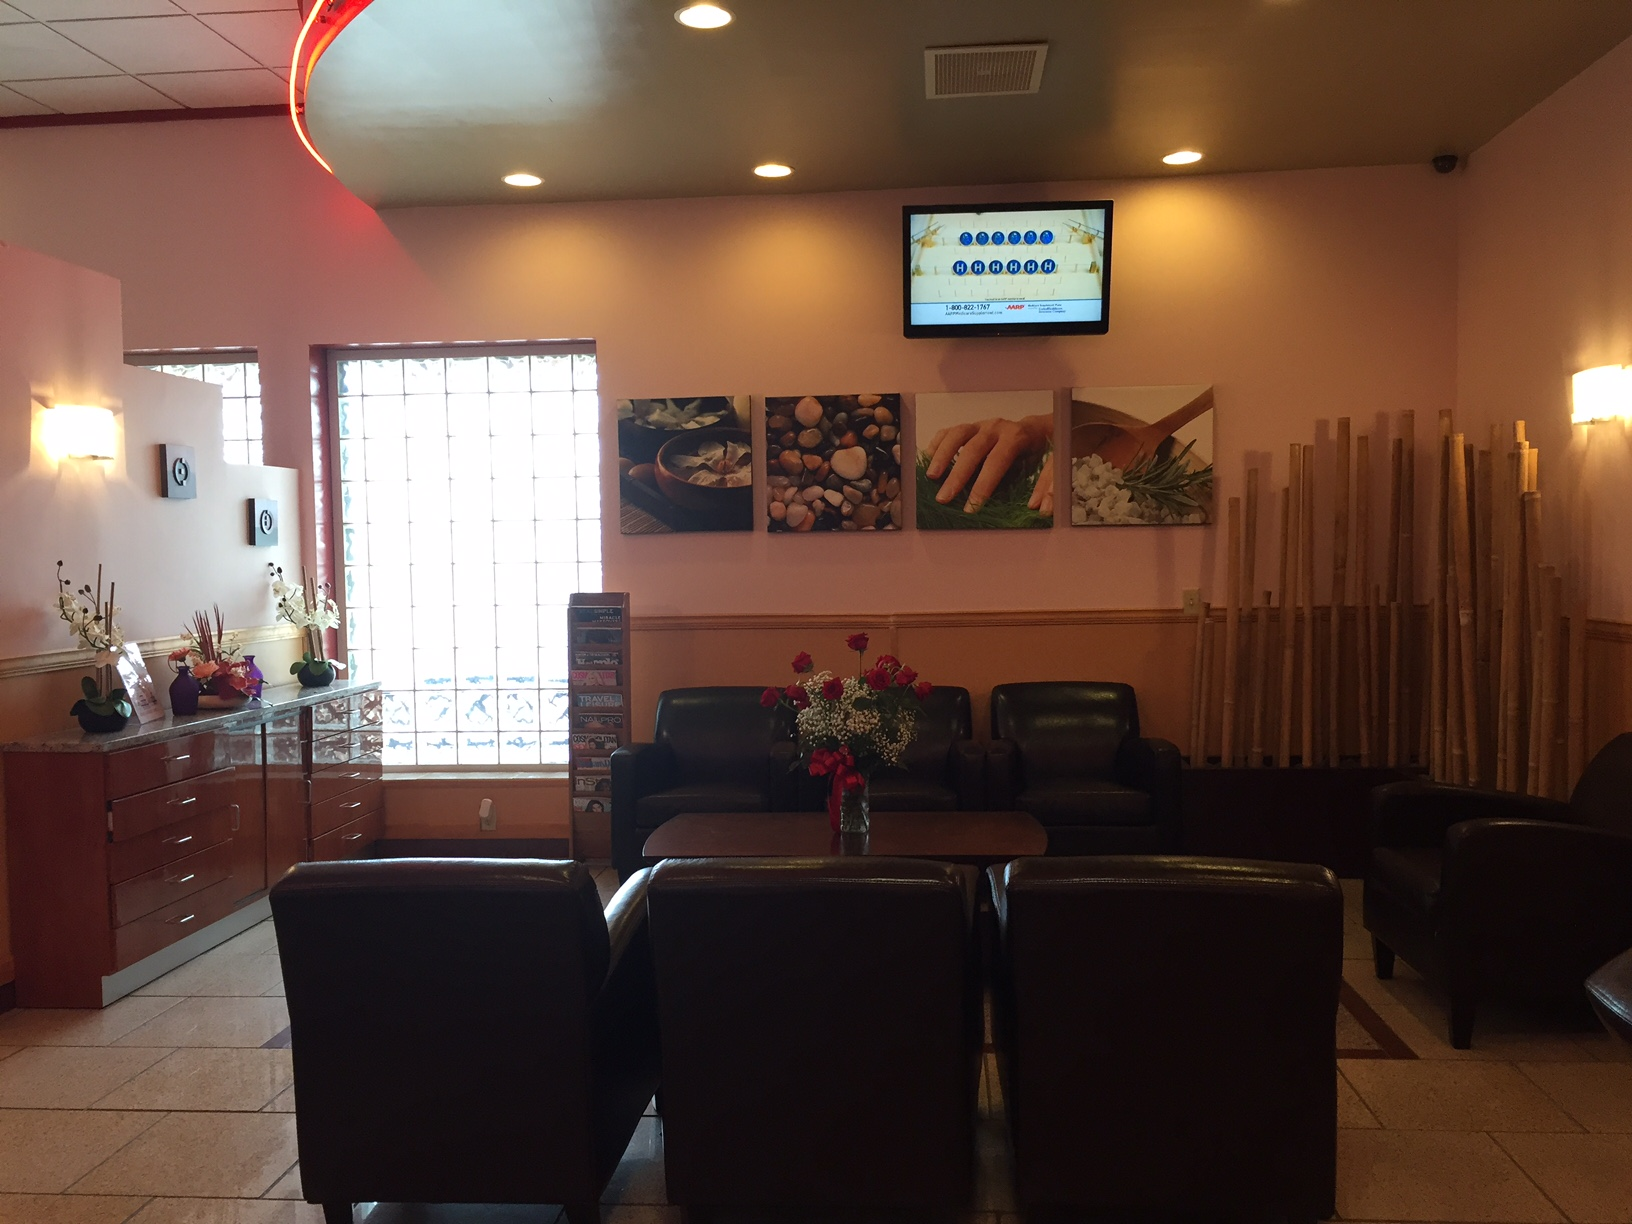 Nail artisans tan spa at 2670 david h mcleod blvd for Salon artisanal